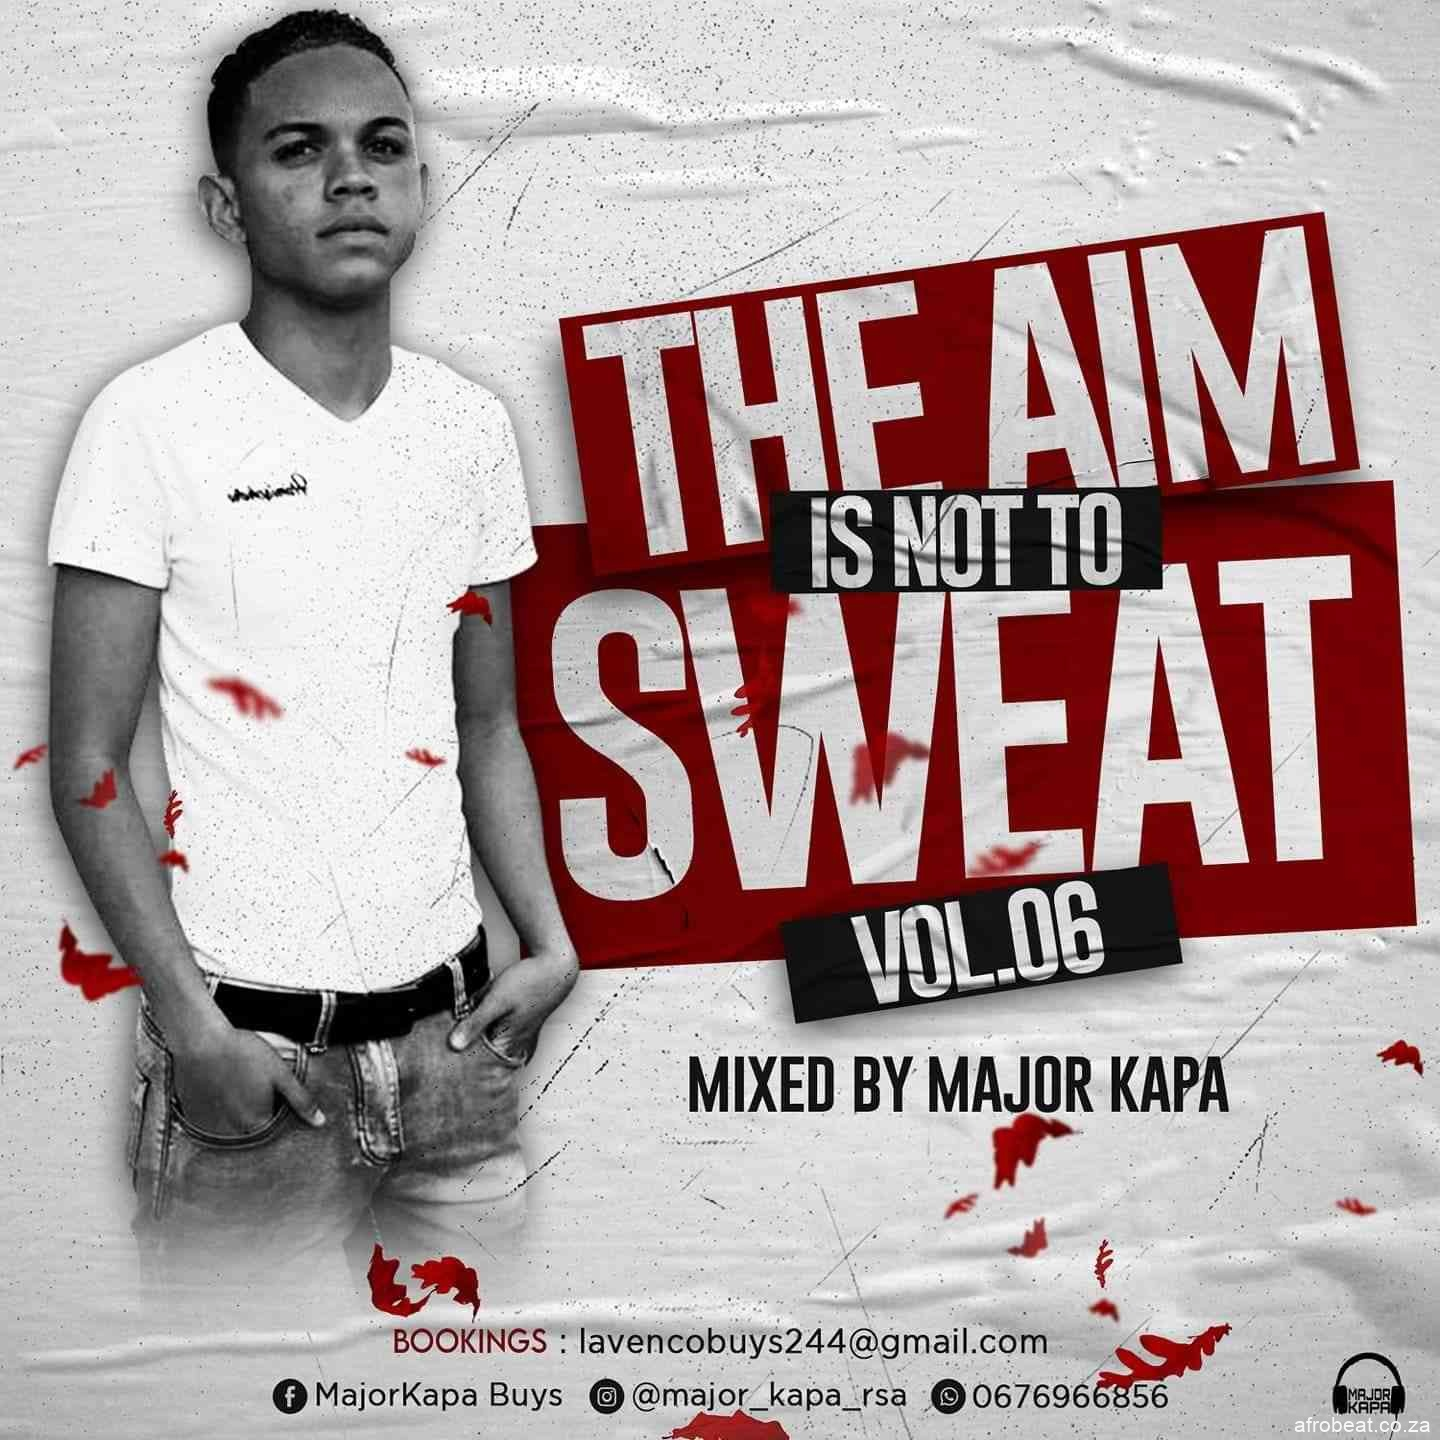 191292742 328044072053765 2091963311002554882 n - Major Kapa – The Aim Is Not To Sweat Vol.06 Mix